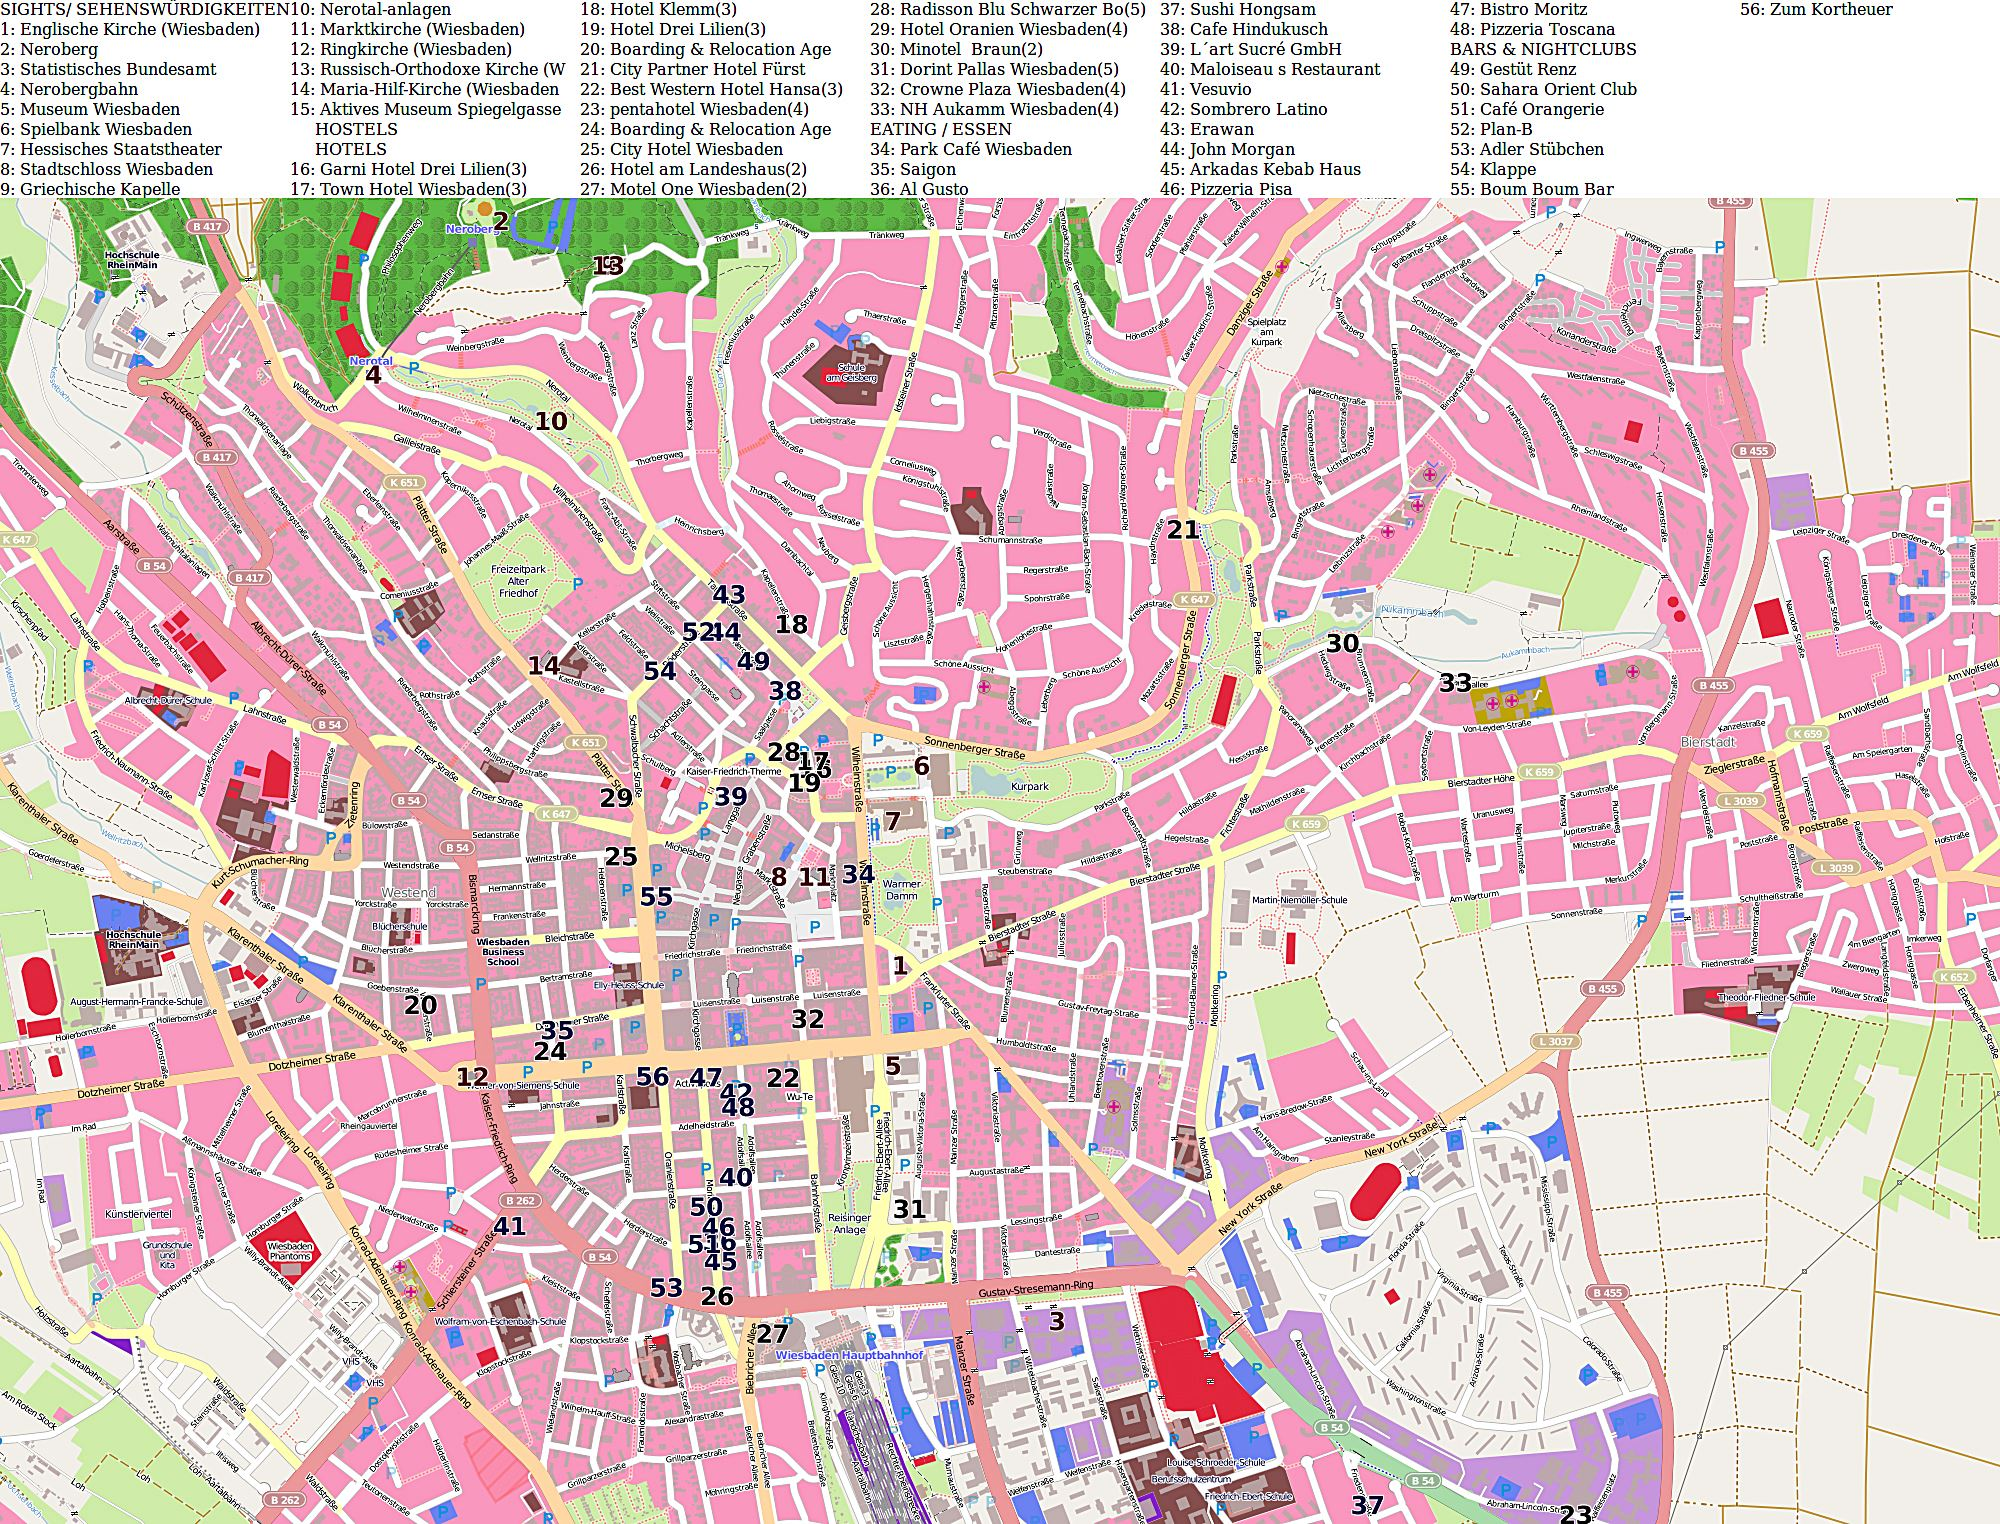 Large Wiesbaden Maps For Free Download And Print High Resolution